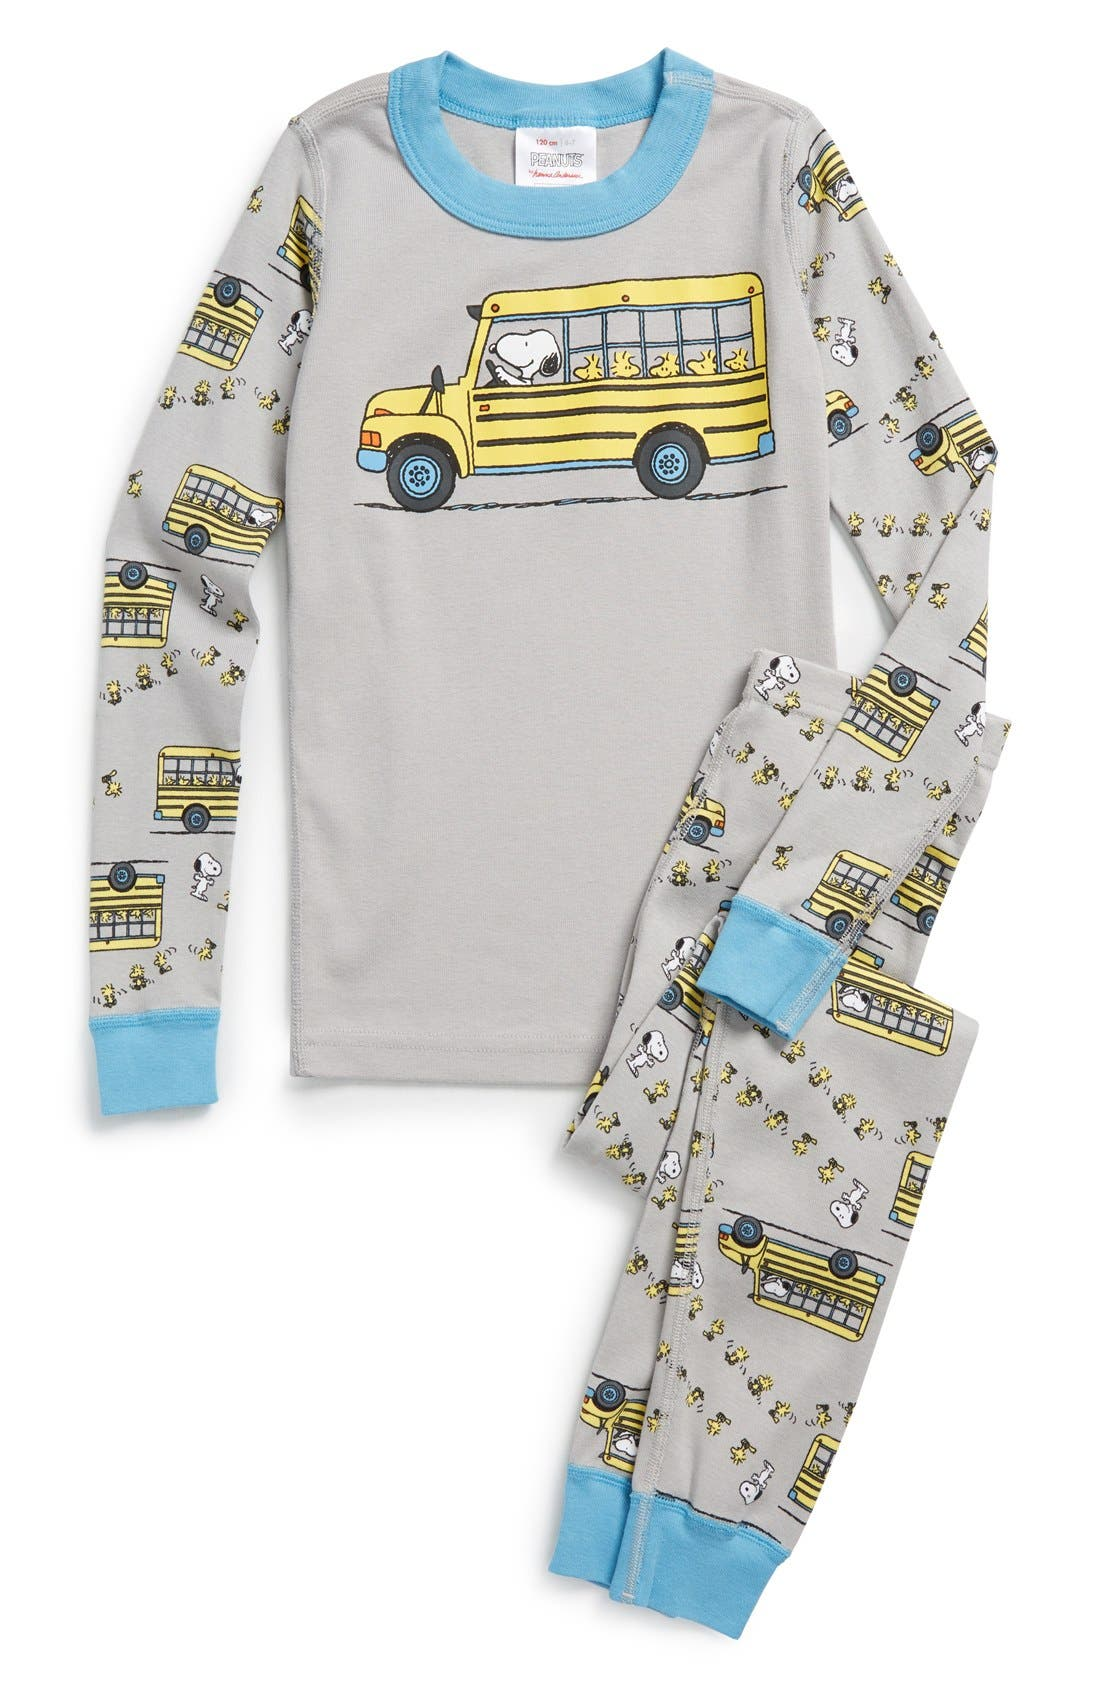 HANNA ANDERSSON,                             'Peanuts<sup>®</sup> - Snoopy Bus' Organic Cotton Two-Piece Fitted Pajamas,                             Main thumbnail 1, color,                             026